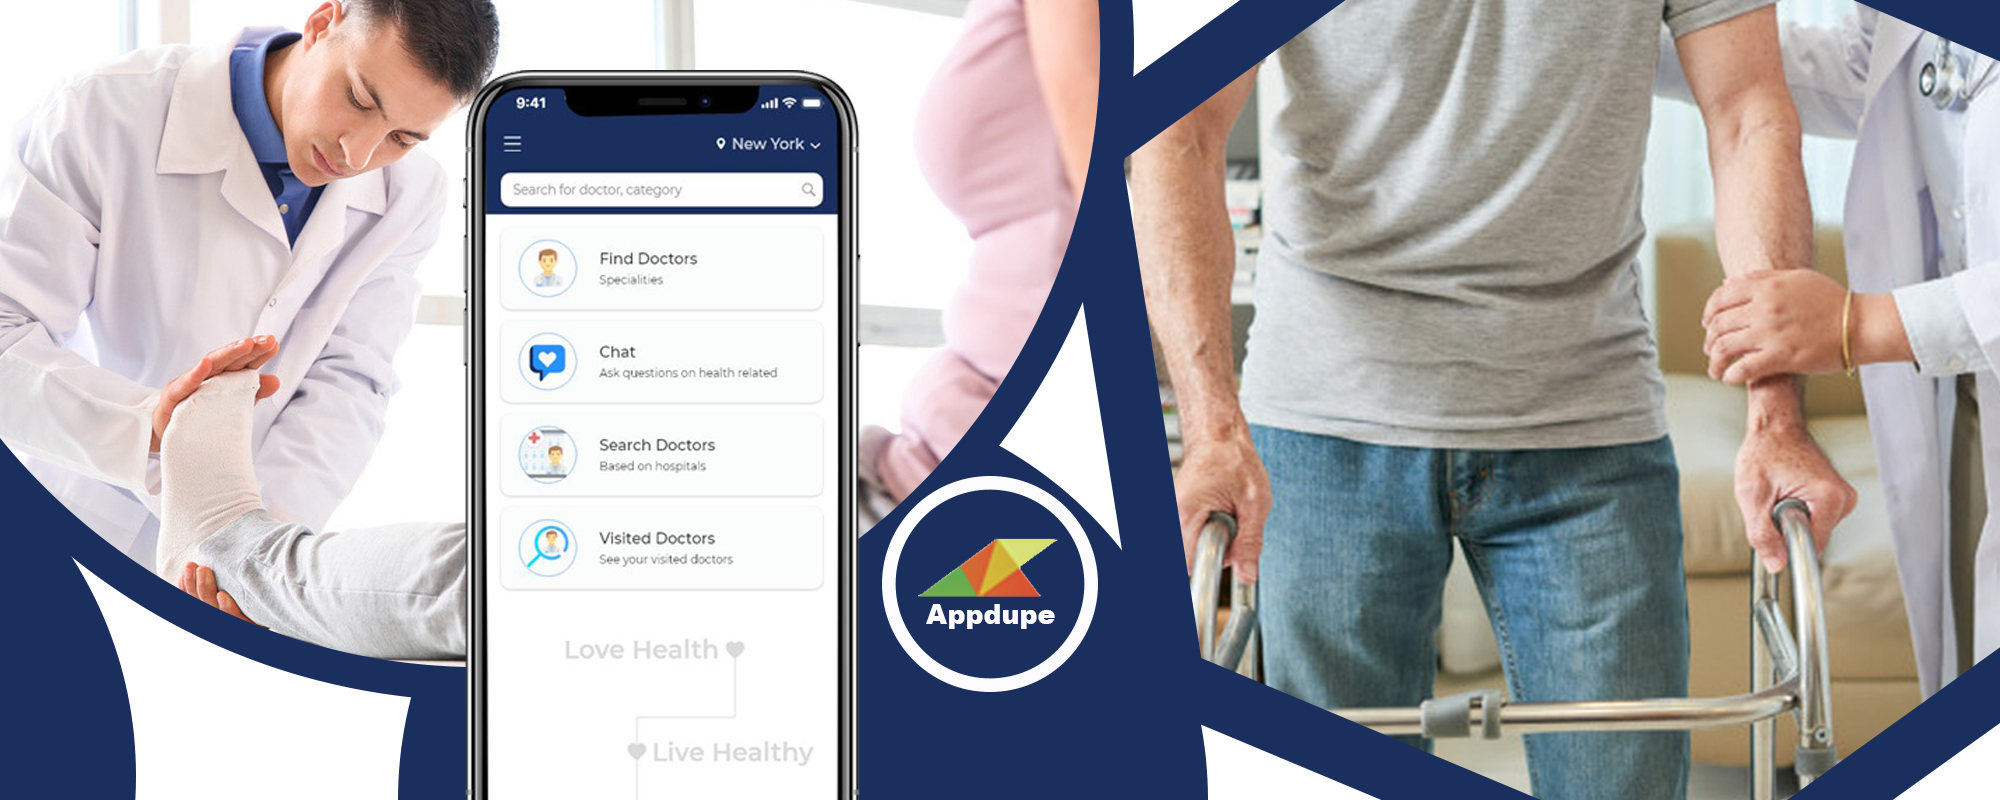 Develop an On-demand physiotherapy app solution